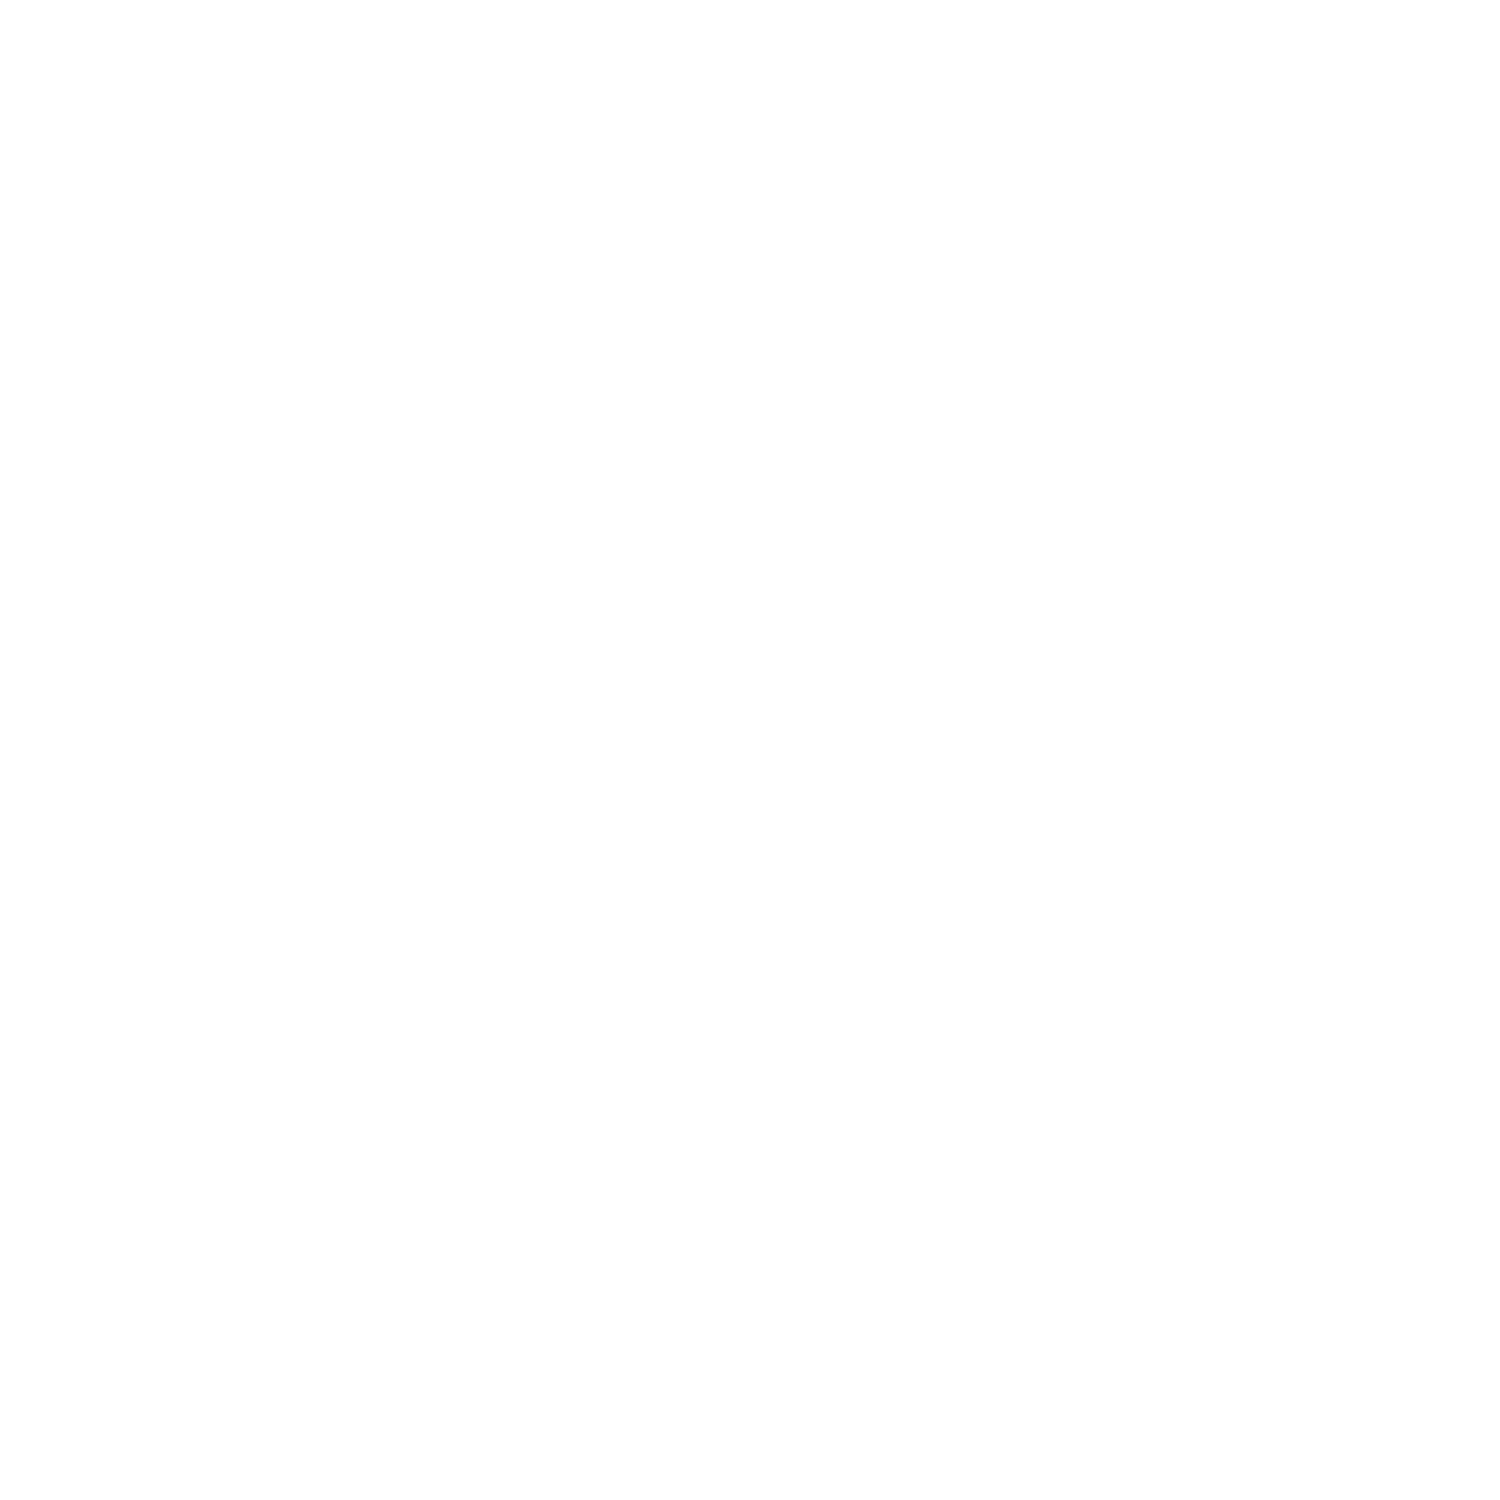 The Kimberly Place